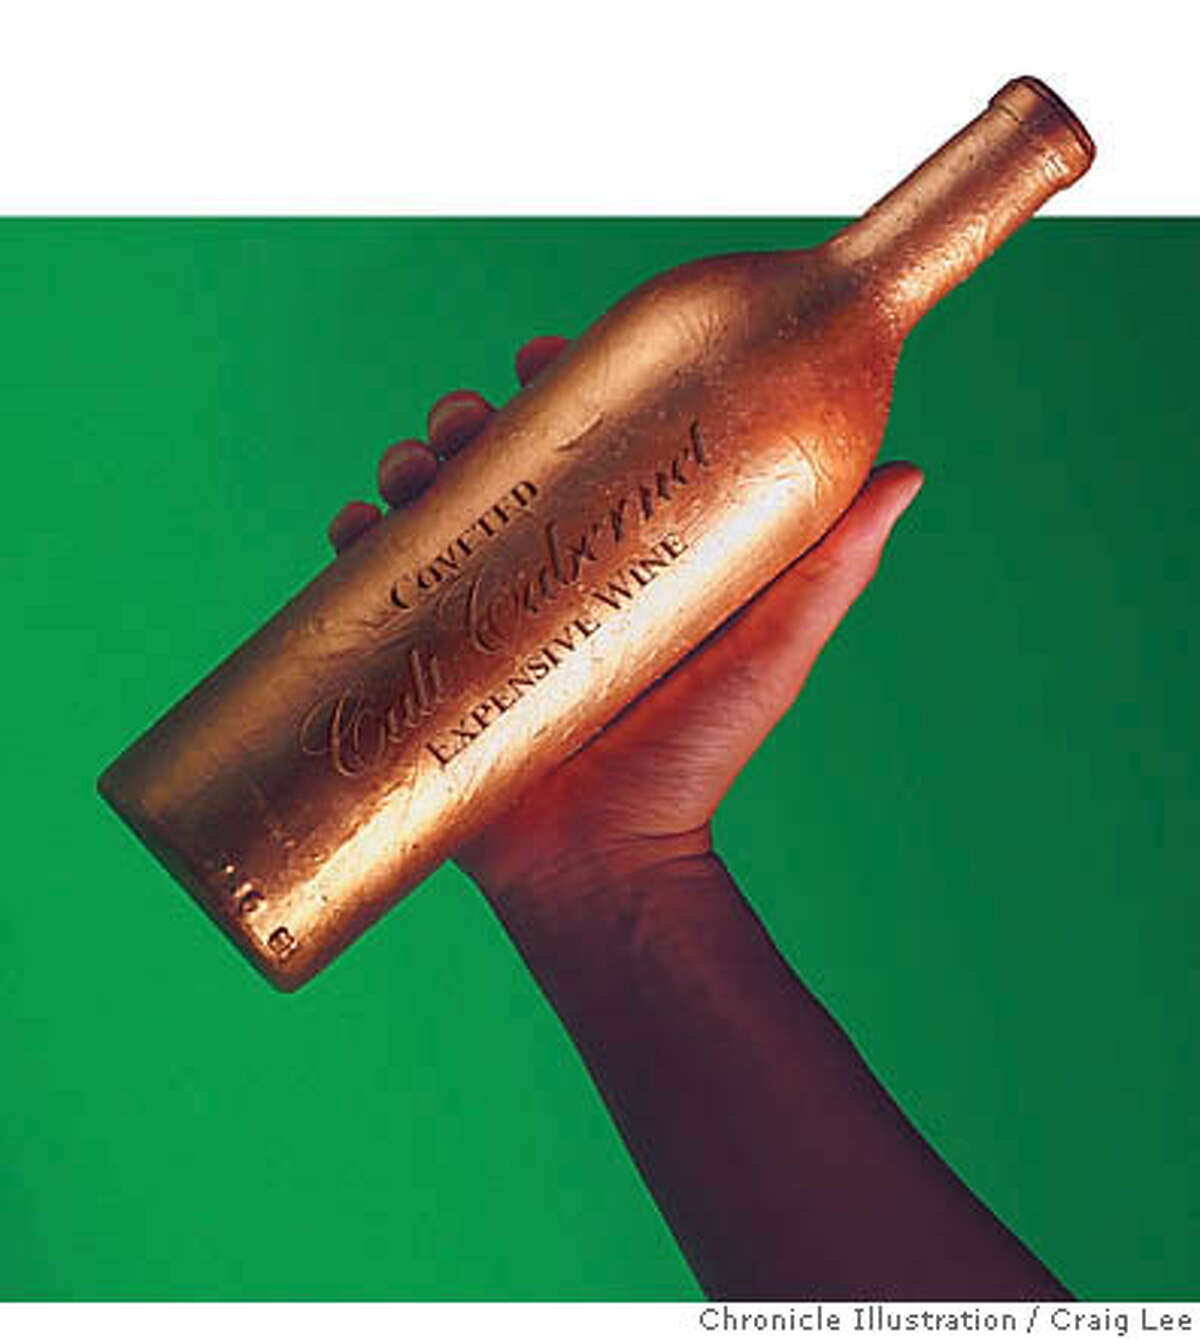 EXPENSIVE03_018_cl.JPG_A story about why some wines are so expensive. Who buys these $200 trophy wines and are they ever consumed? Or just hoarded. Photo illustration of a wine-like trophy._Craig Lee / The Chronicle__MANDATORY CREDIT FOR PHOTOG AND SF CHRONICLE/ -MAGS OUT